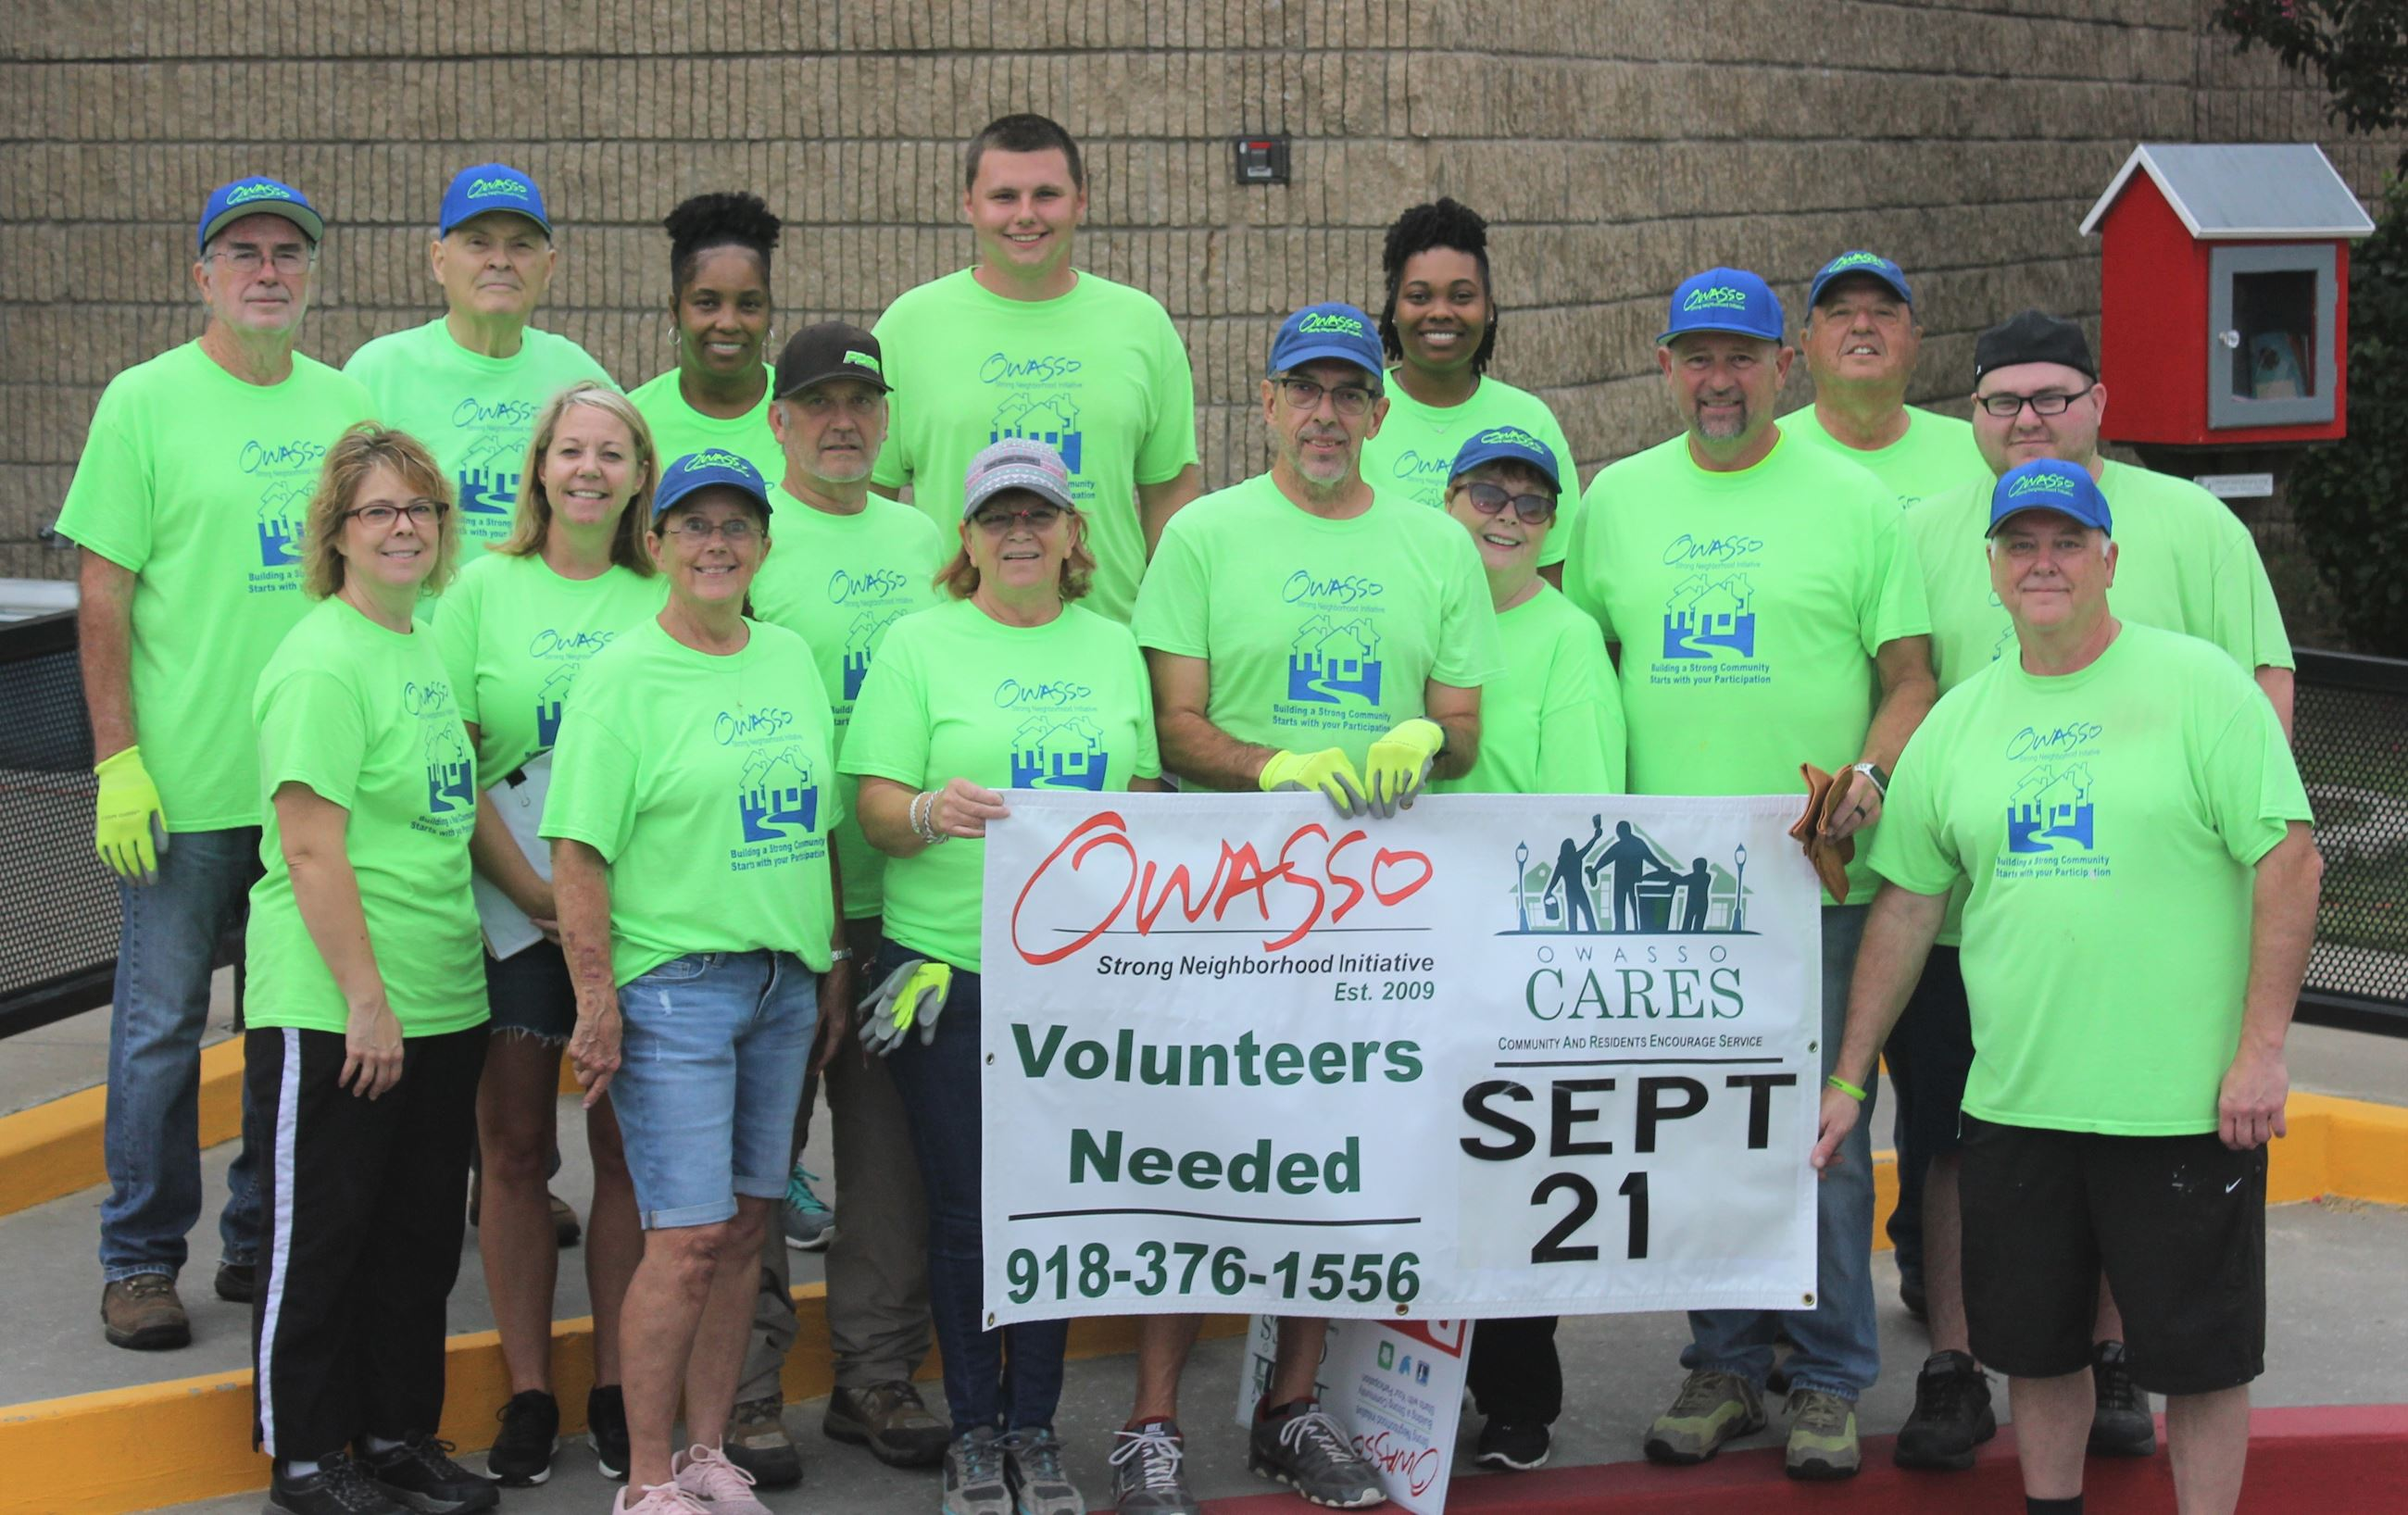 2019 Fall OSNI Owasso CARES Day of Service Leadership Team